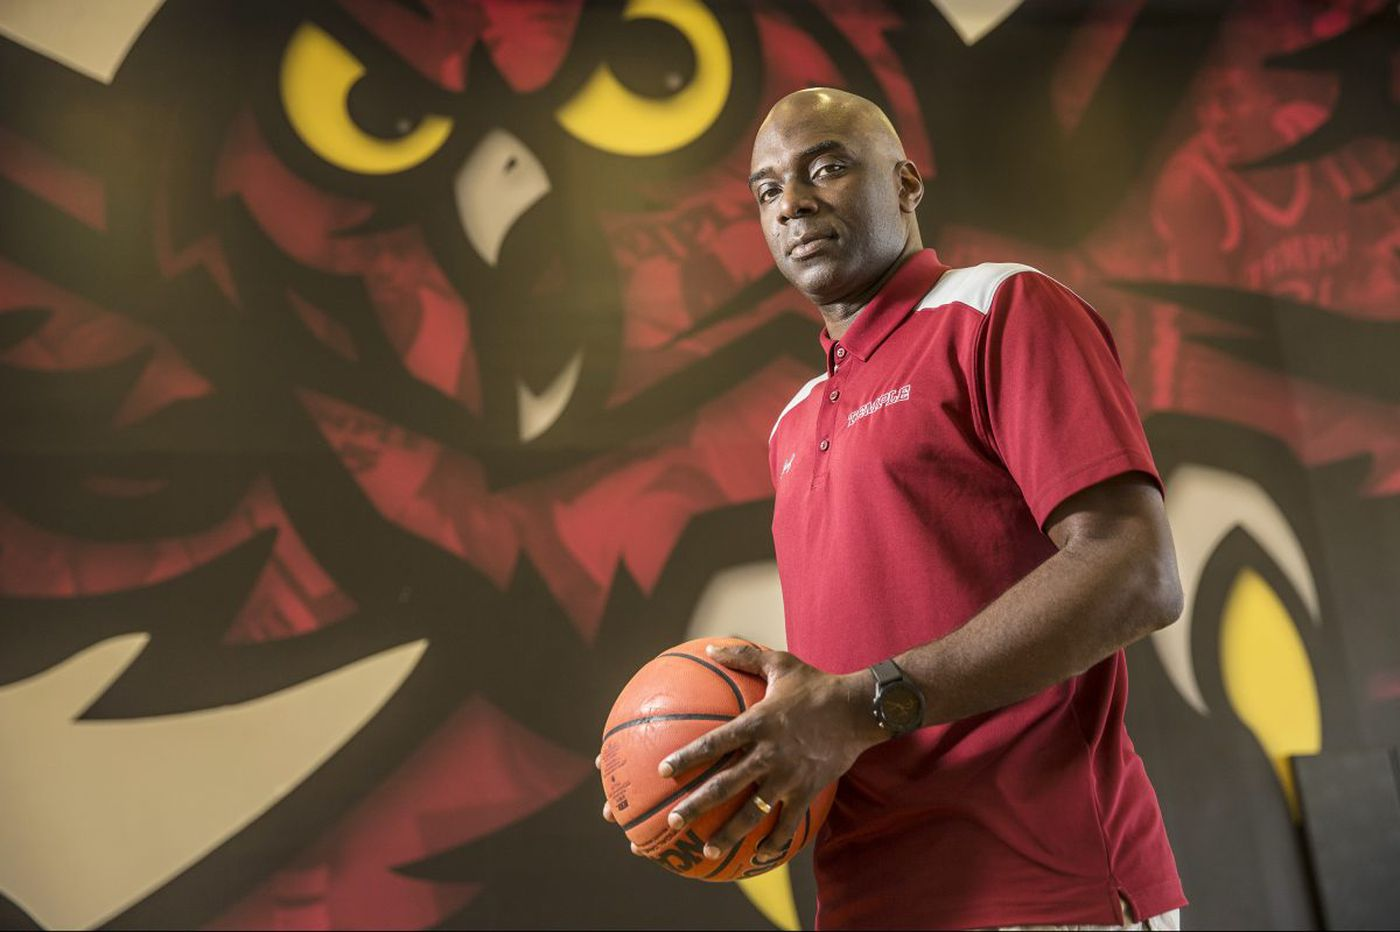 Aaron McKie to increase role as Temple starts transition from Fran Dunphy